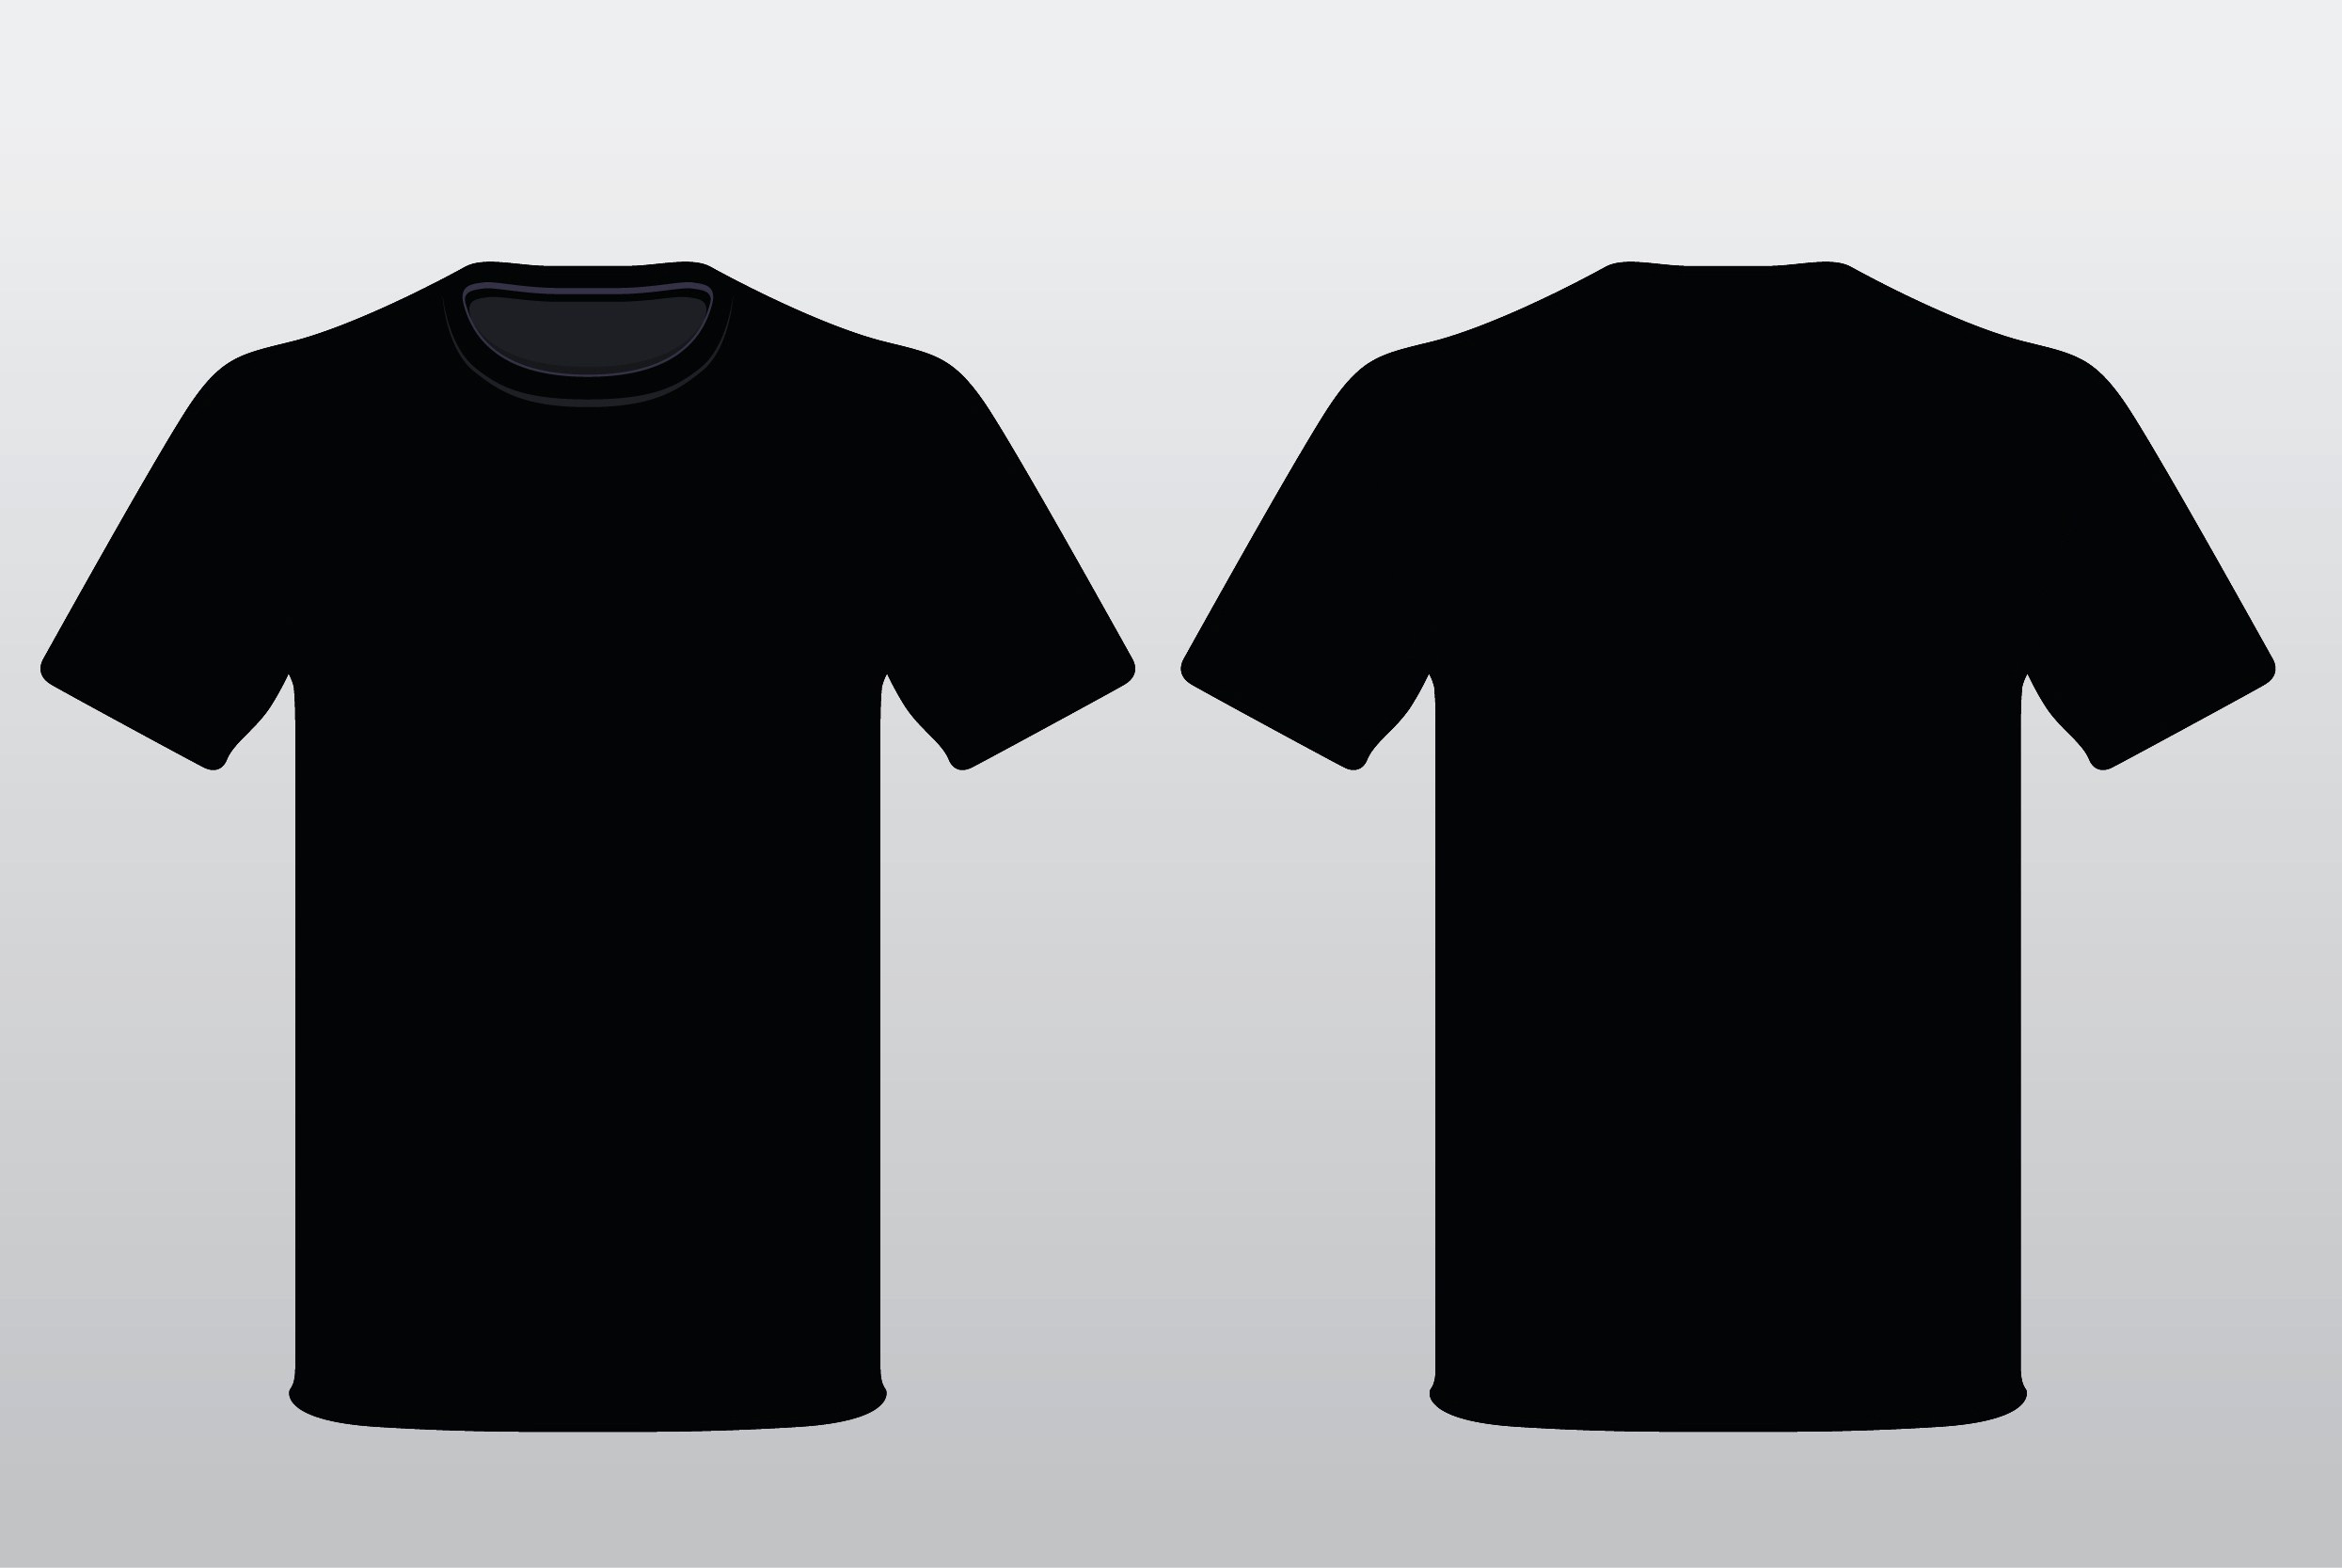 Printable T Shirt Templates Elegant All Over Print T Shirt Design Templates